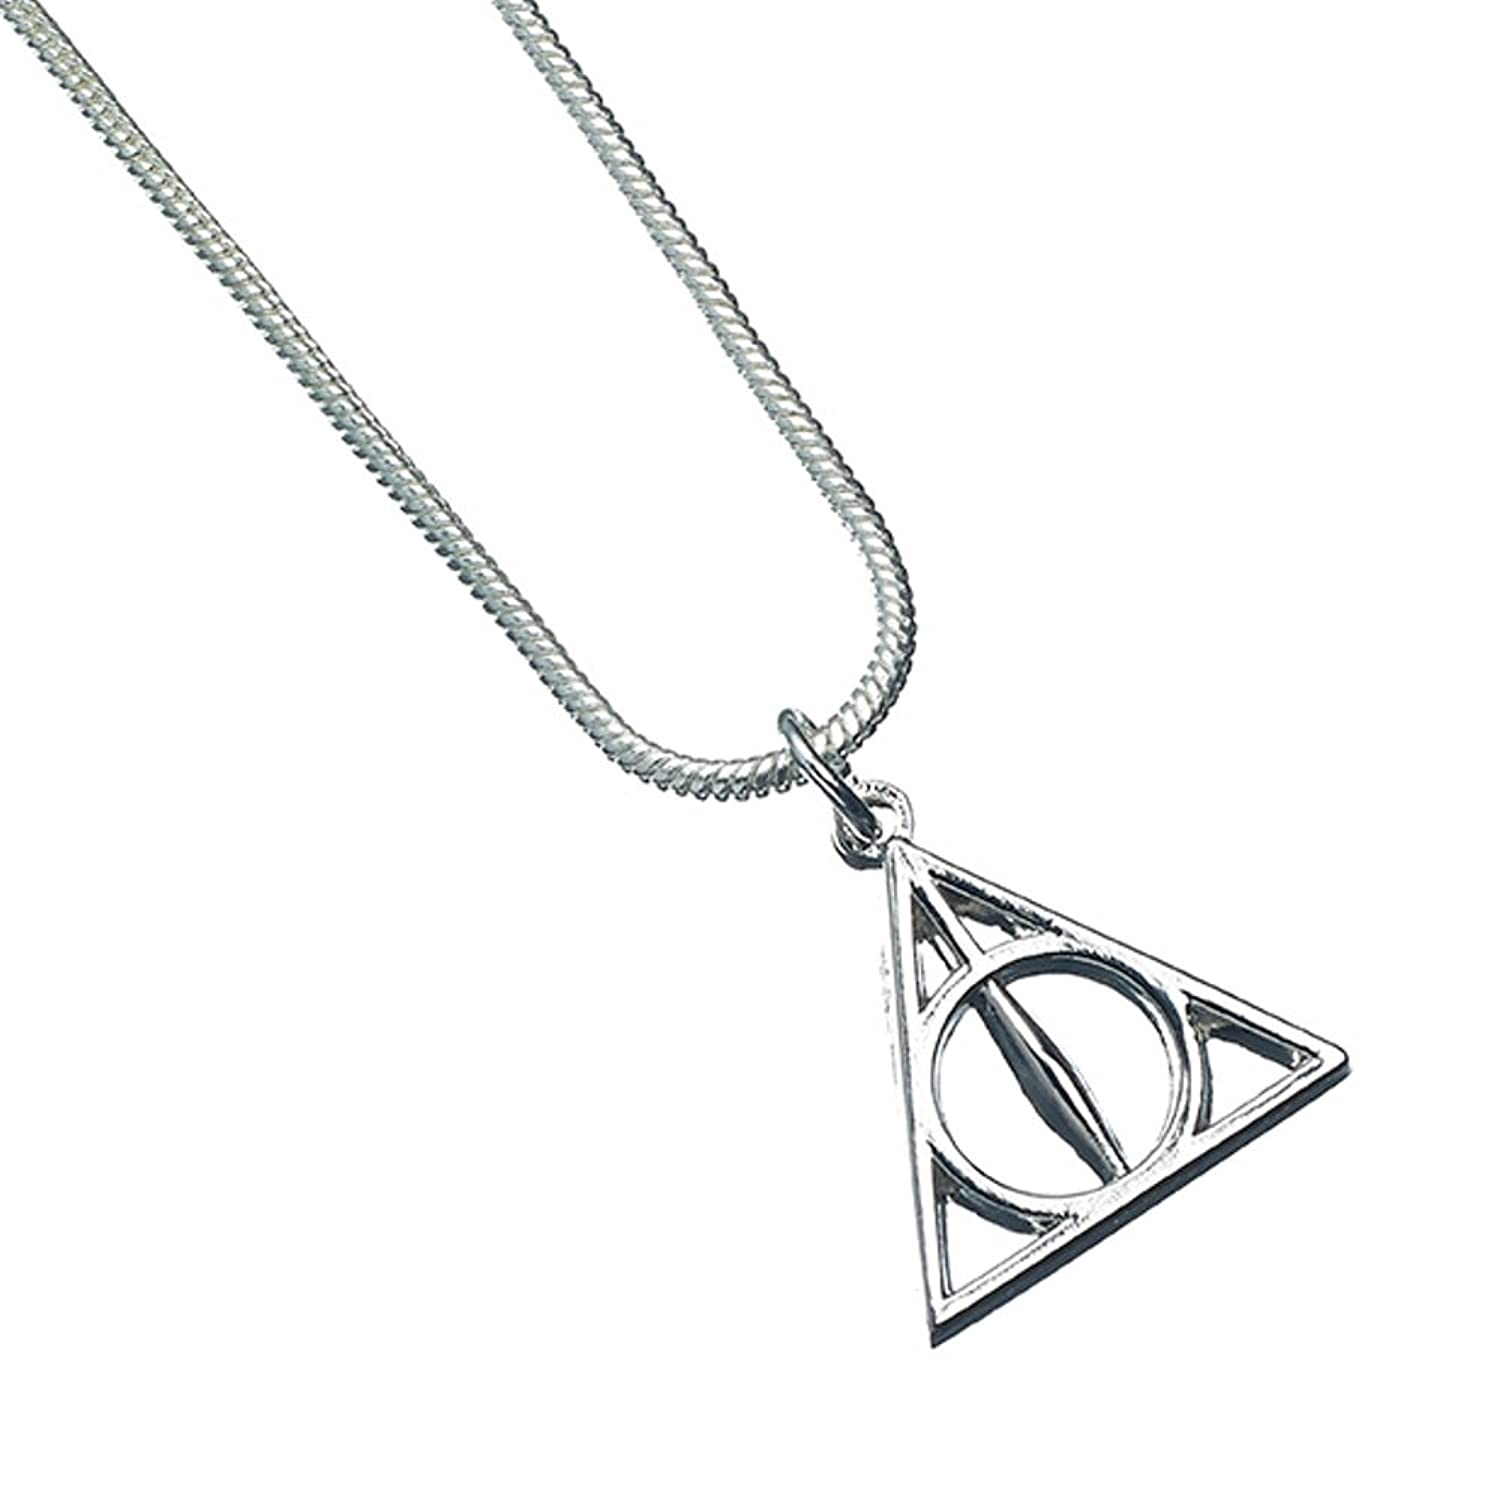 Harry Potter Deathly Hallows Necklace cW5aPj